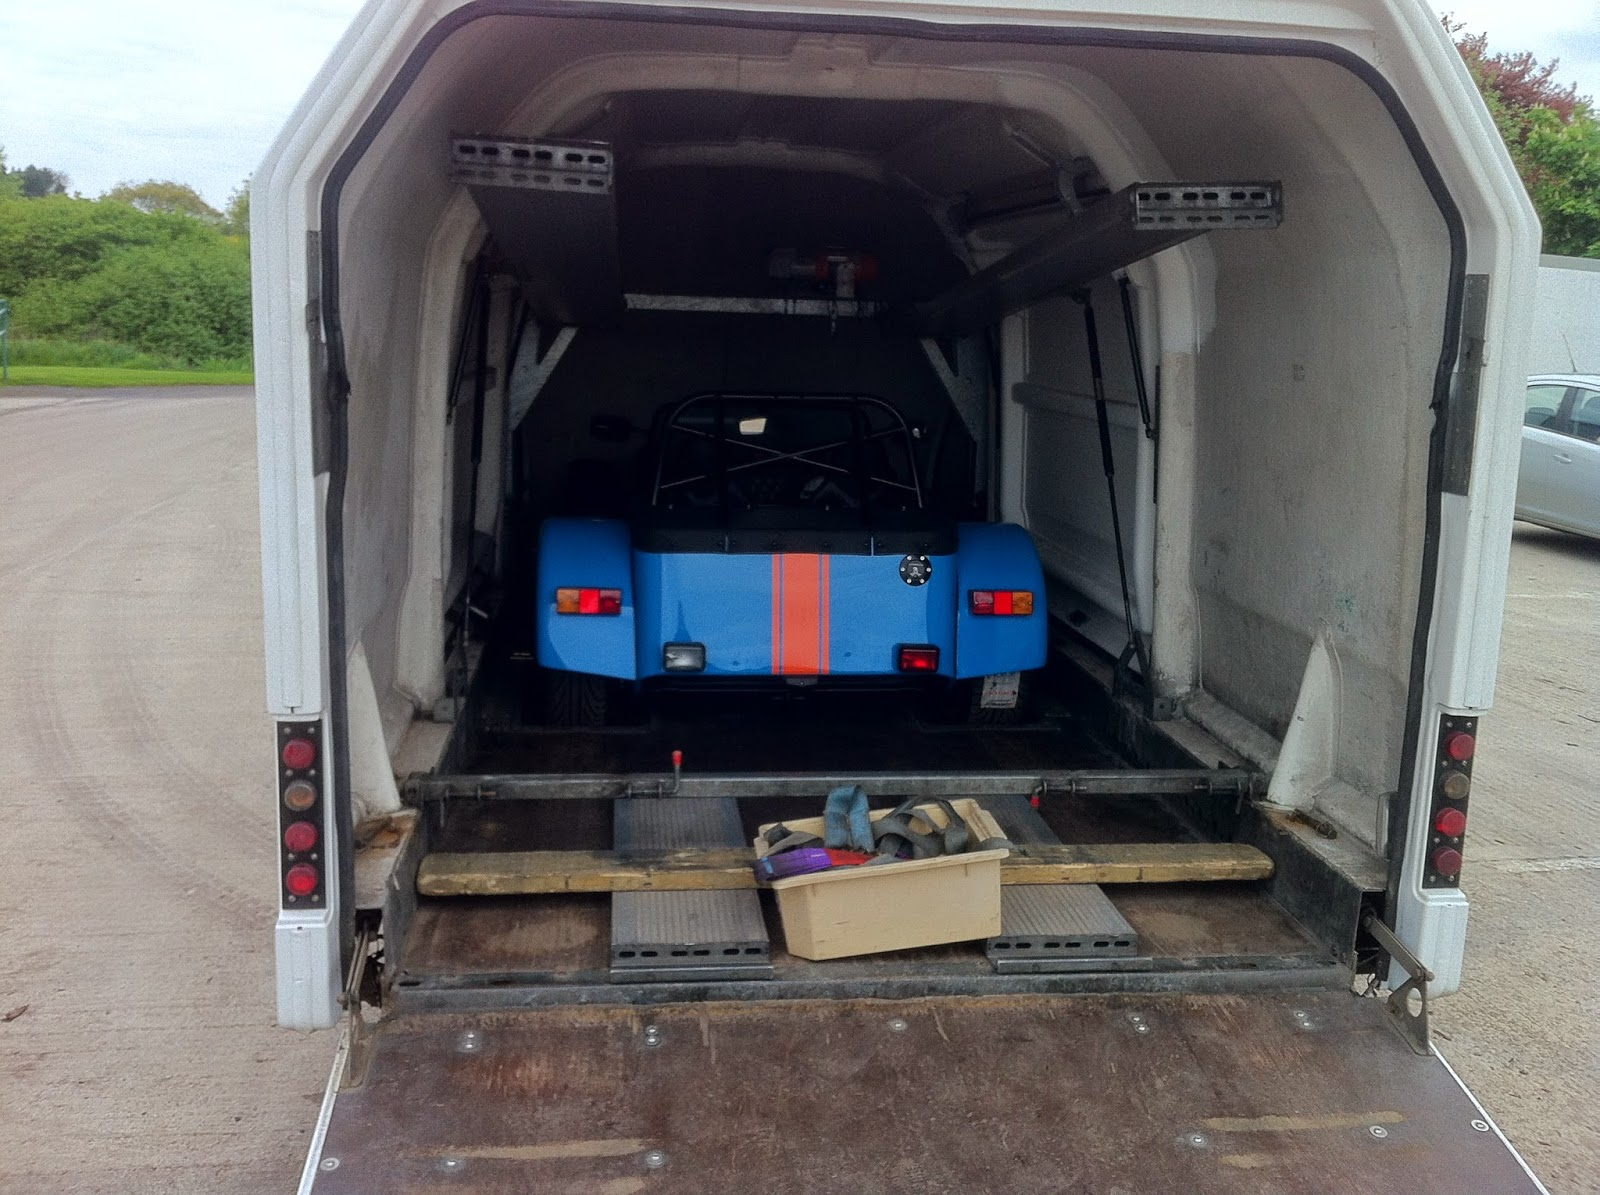 The R500 loaded into a covered car transporter ready to be taken to Nottingham VOSA test centre